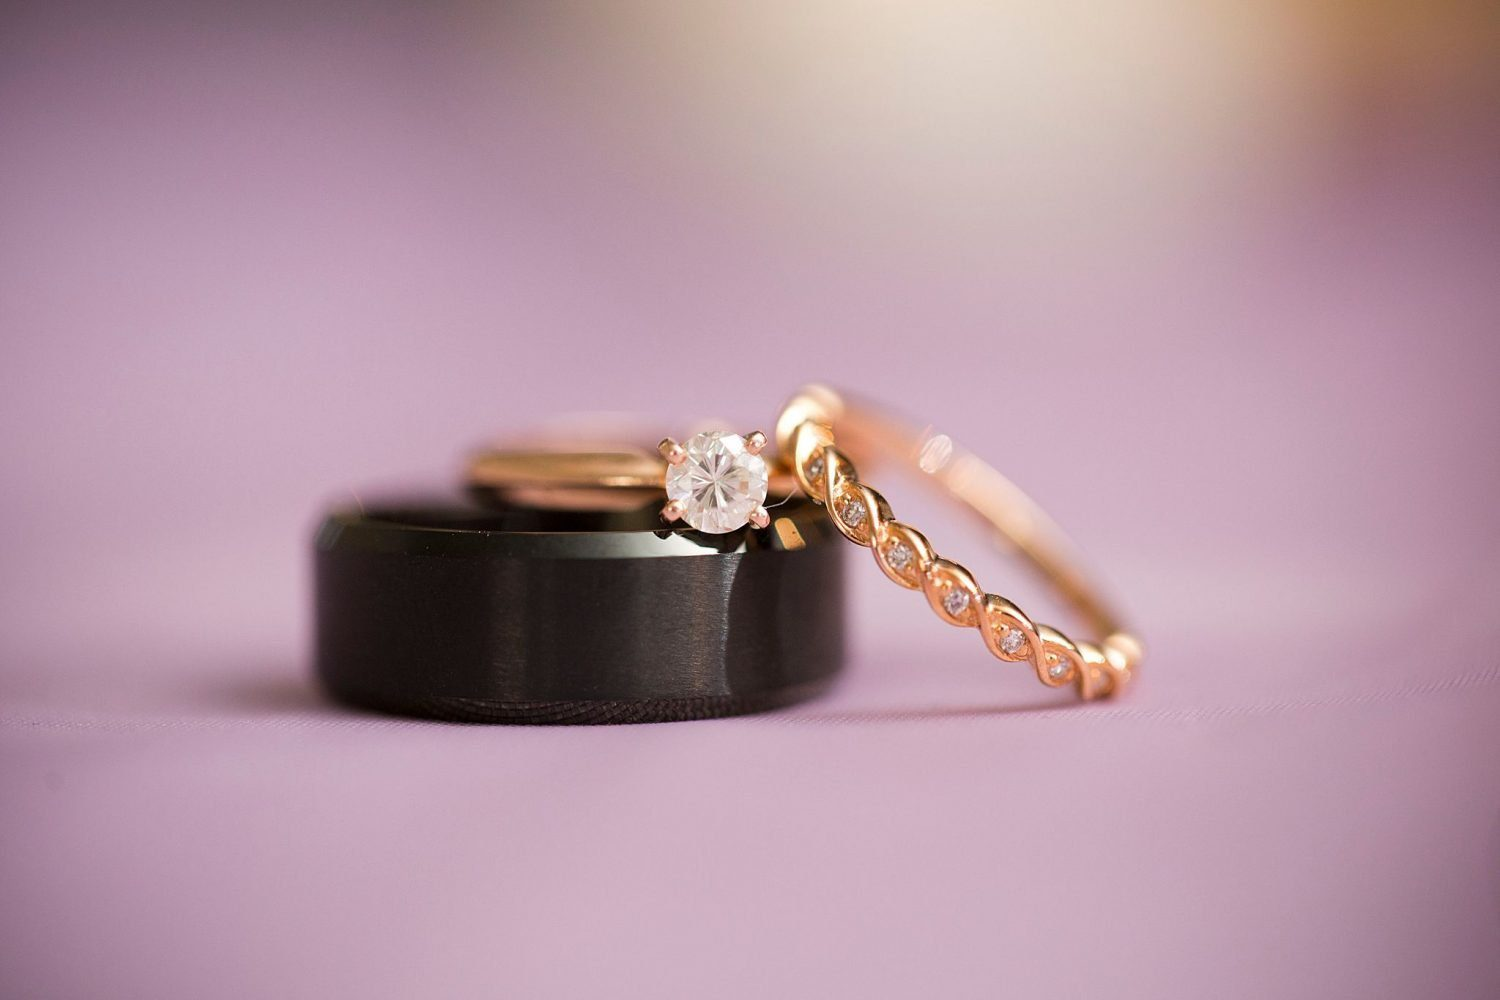 Closeup of groom and bride's wedding rings with a lavender background.